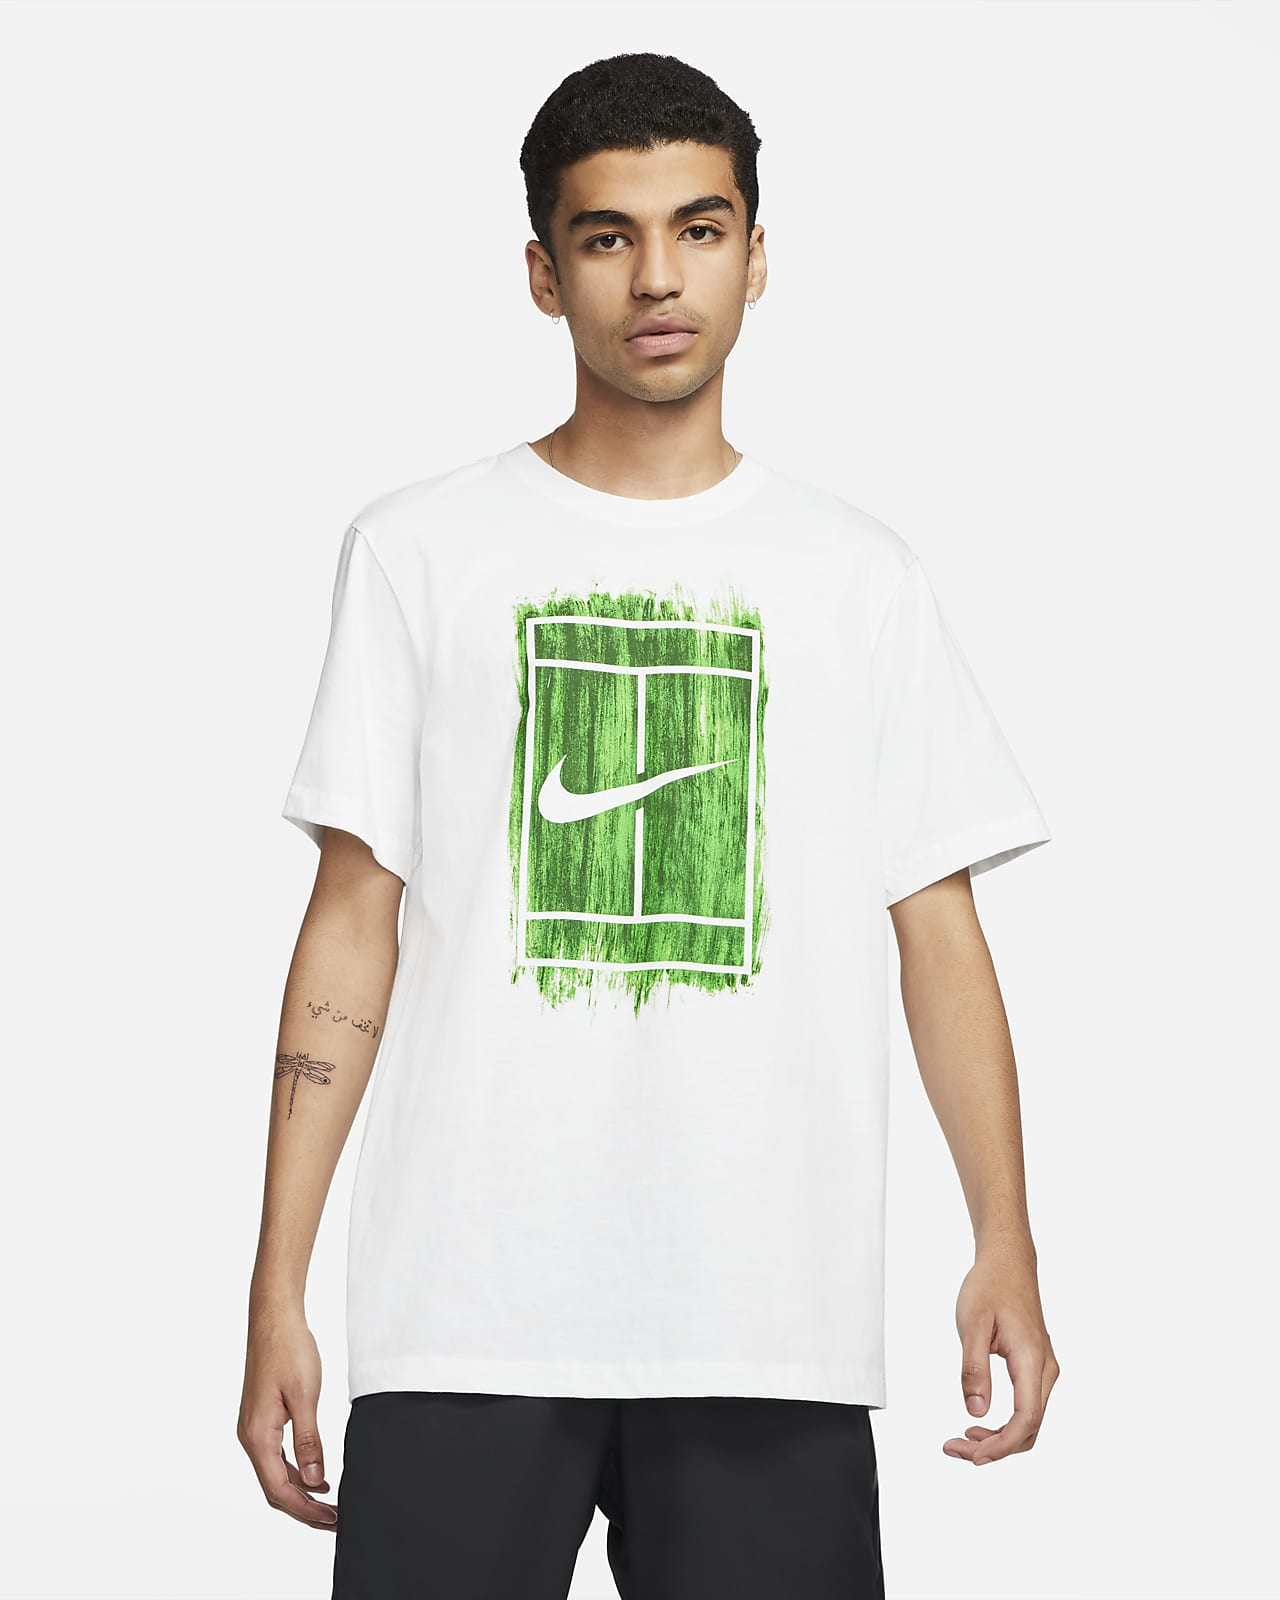 NikeCourt Men's Graphic Tennis T-Shirt